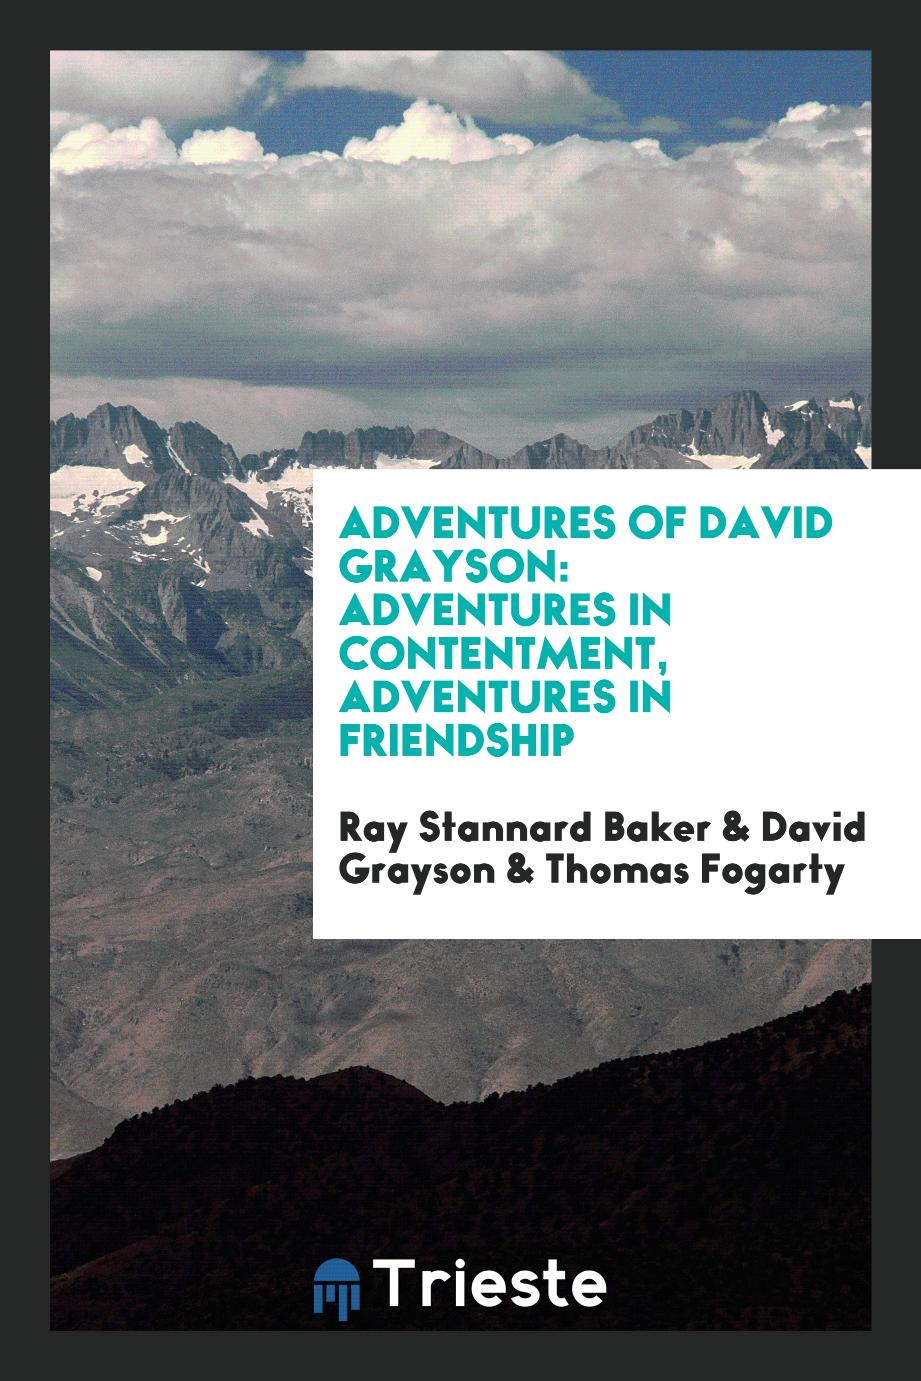 Adventures of David Grayson: Adventures in contentment, adventures in friendship